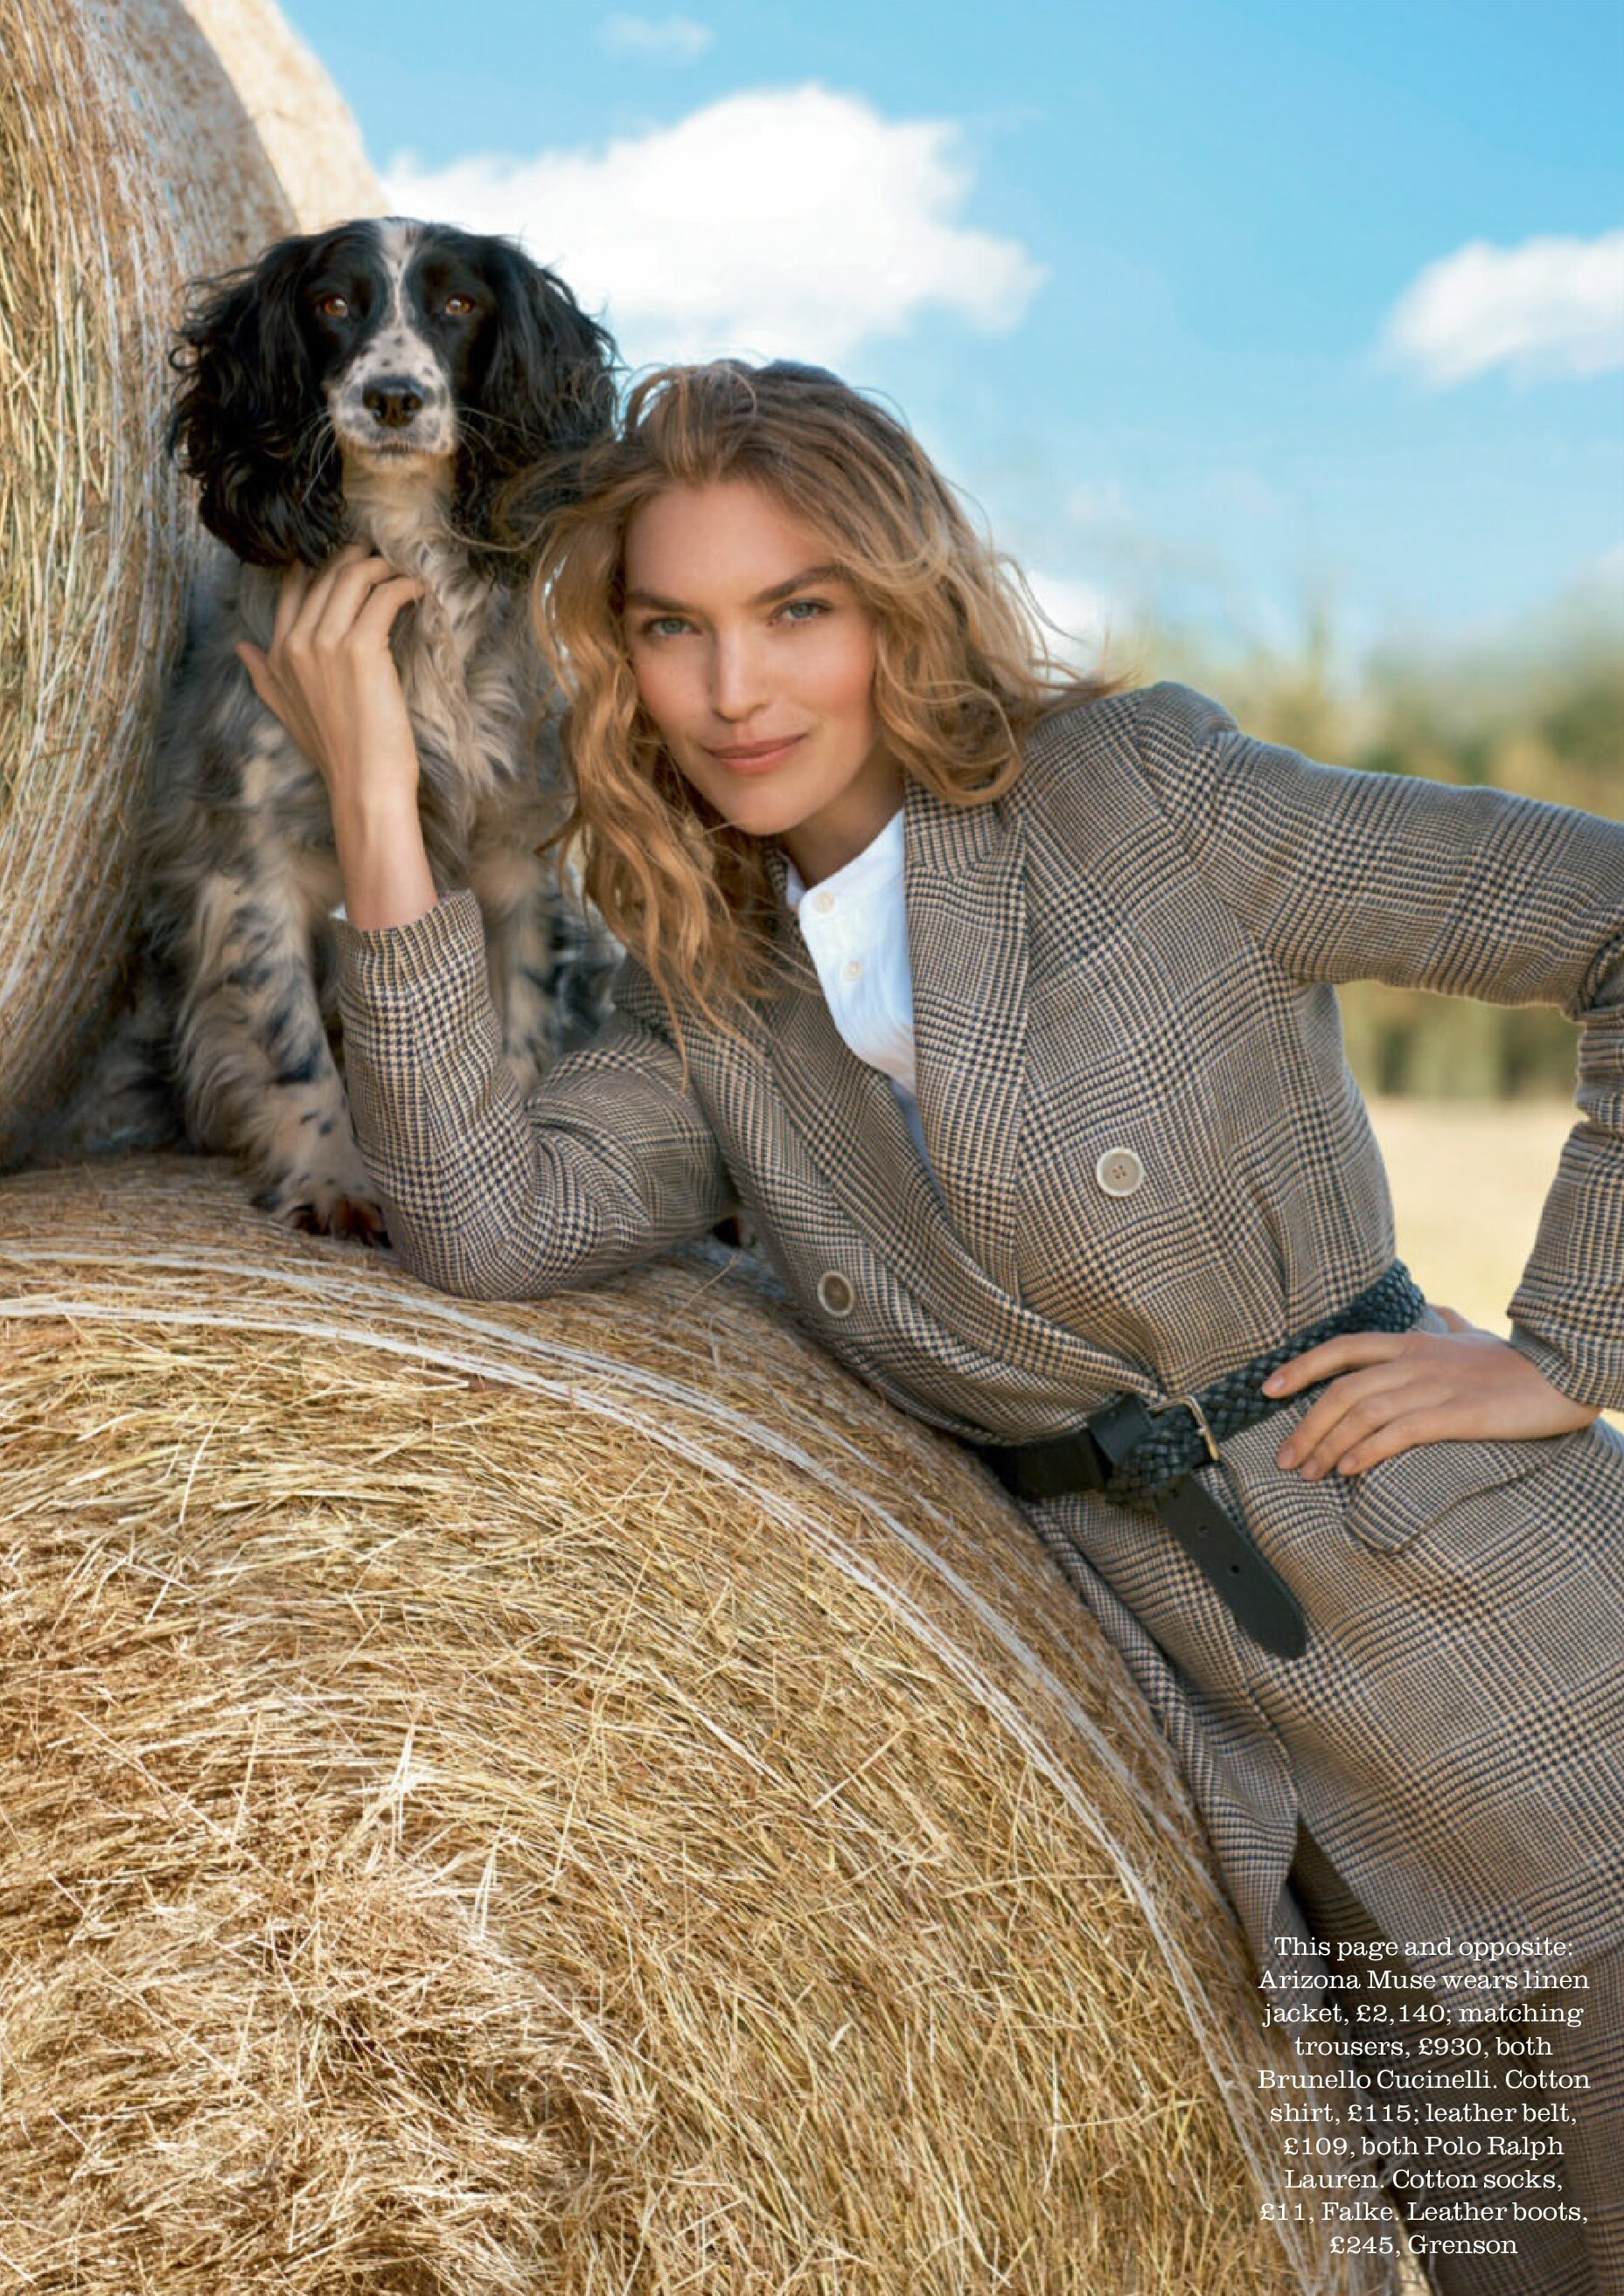 ARIZONA MUSE WEARS LINEN JACKET AND MATCHING TROUSERS, BOTH BRUNELLO CUCINELLI. COTTON SHIRT; LEATHER BELT, BOTH POLO RALPH LAUREN Image: Richard Phibbs